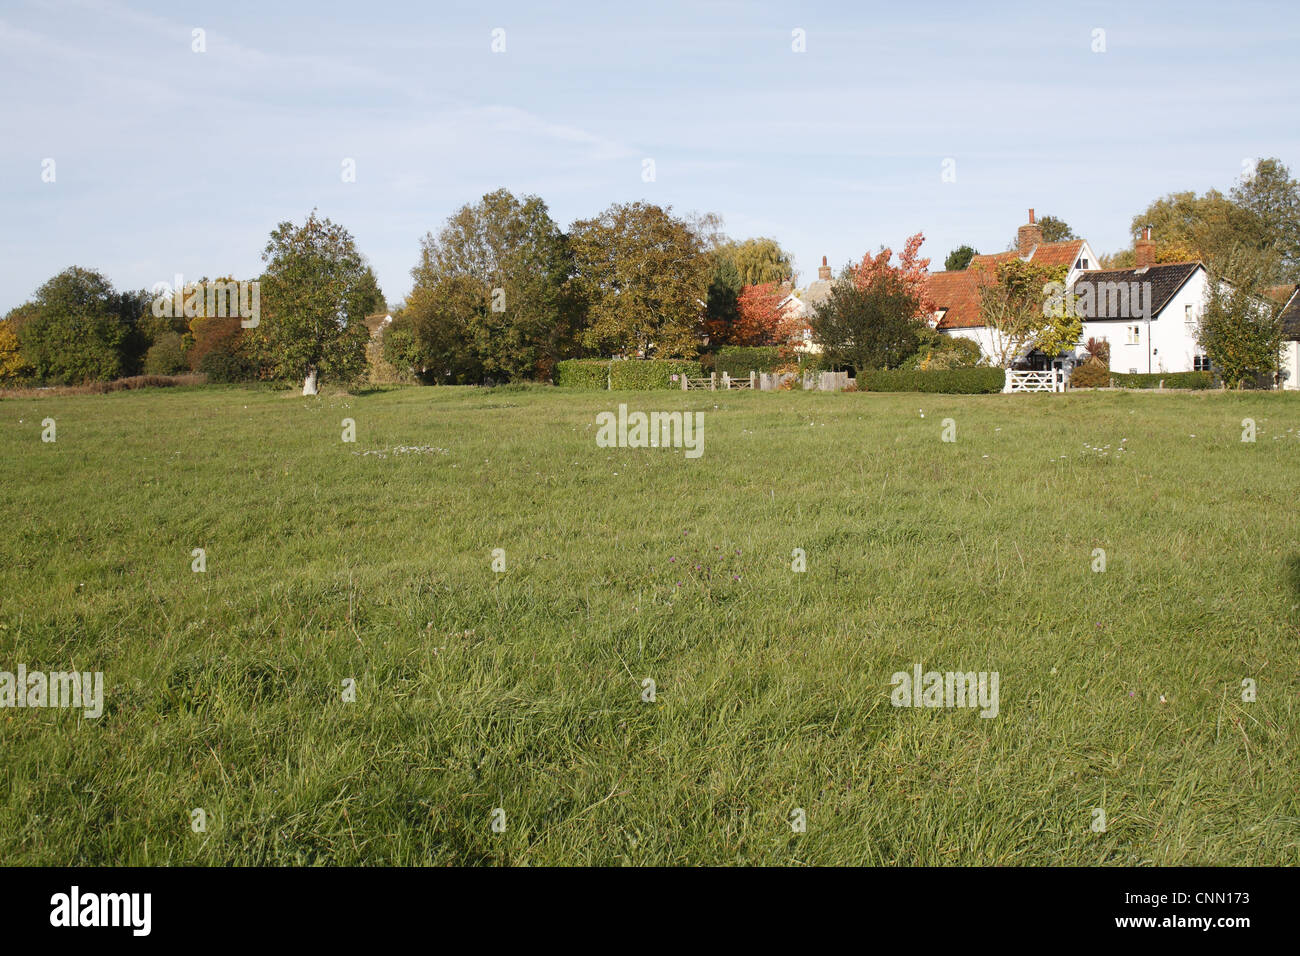 View of commonland reserve, Mellis Common, Mellis, Suffolk, England, october Stock Photo